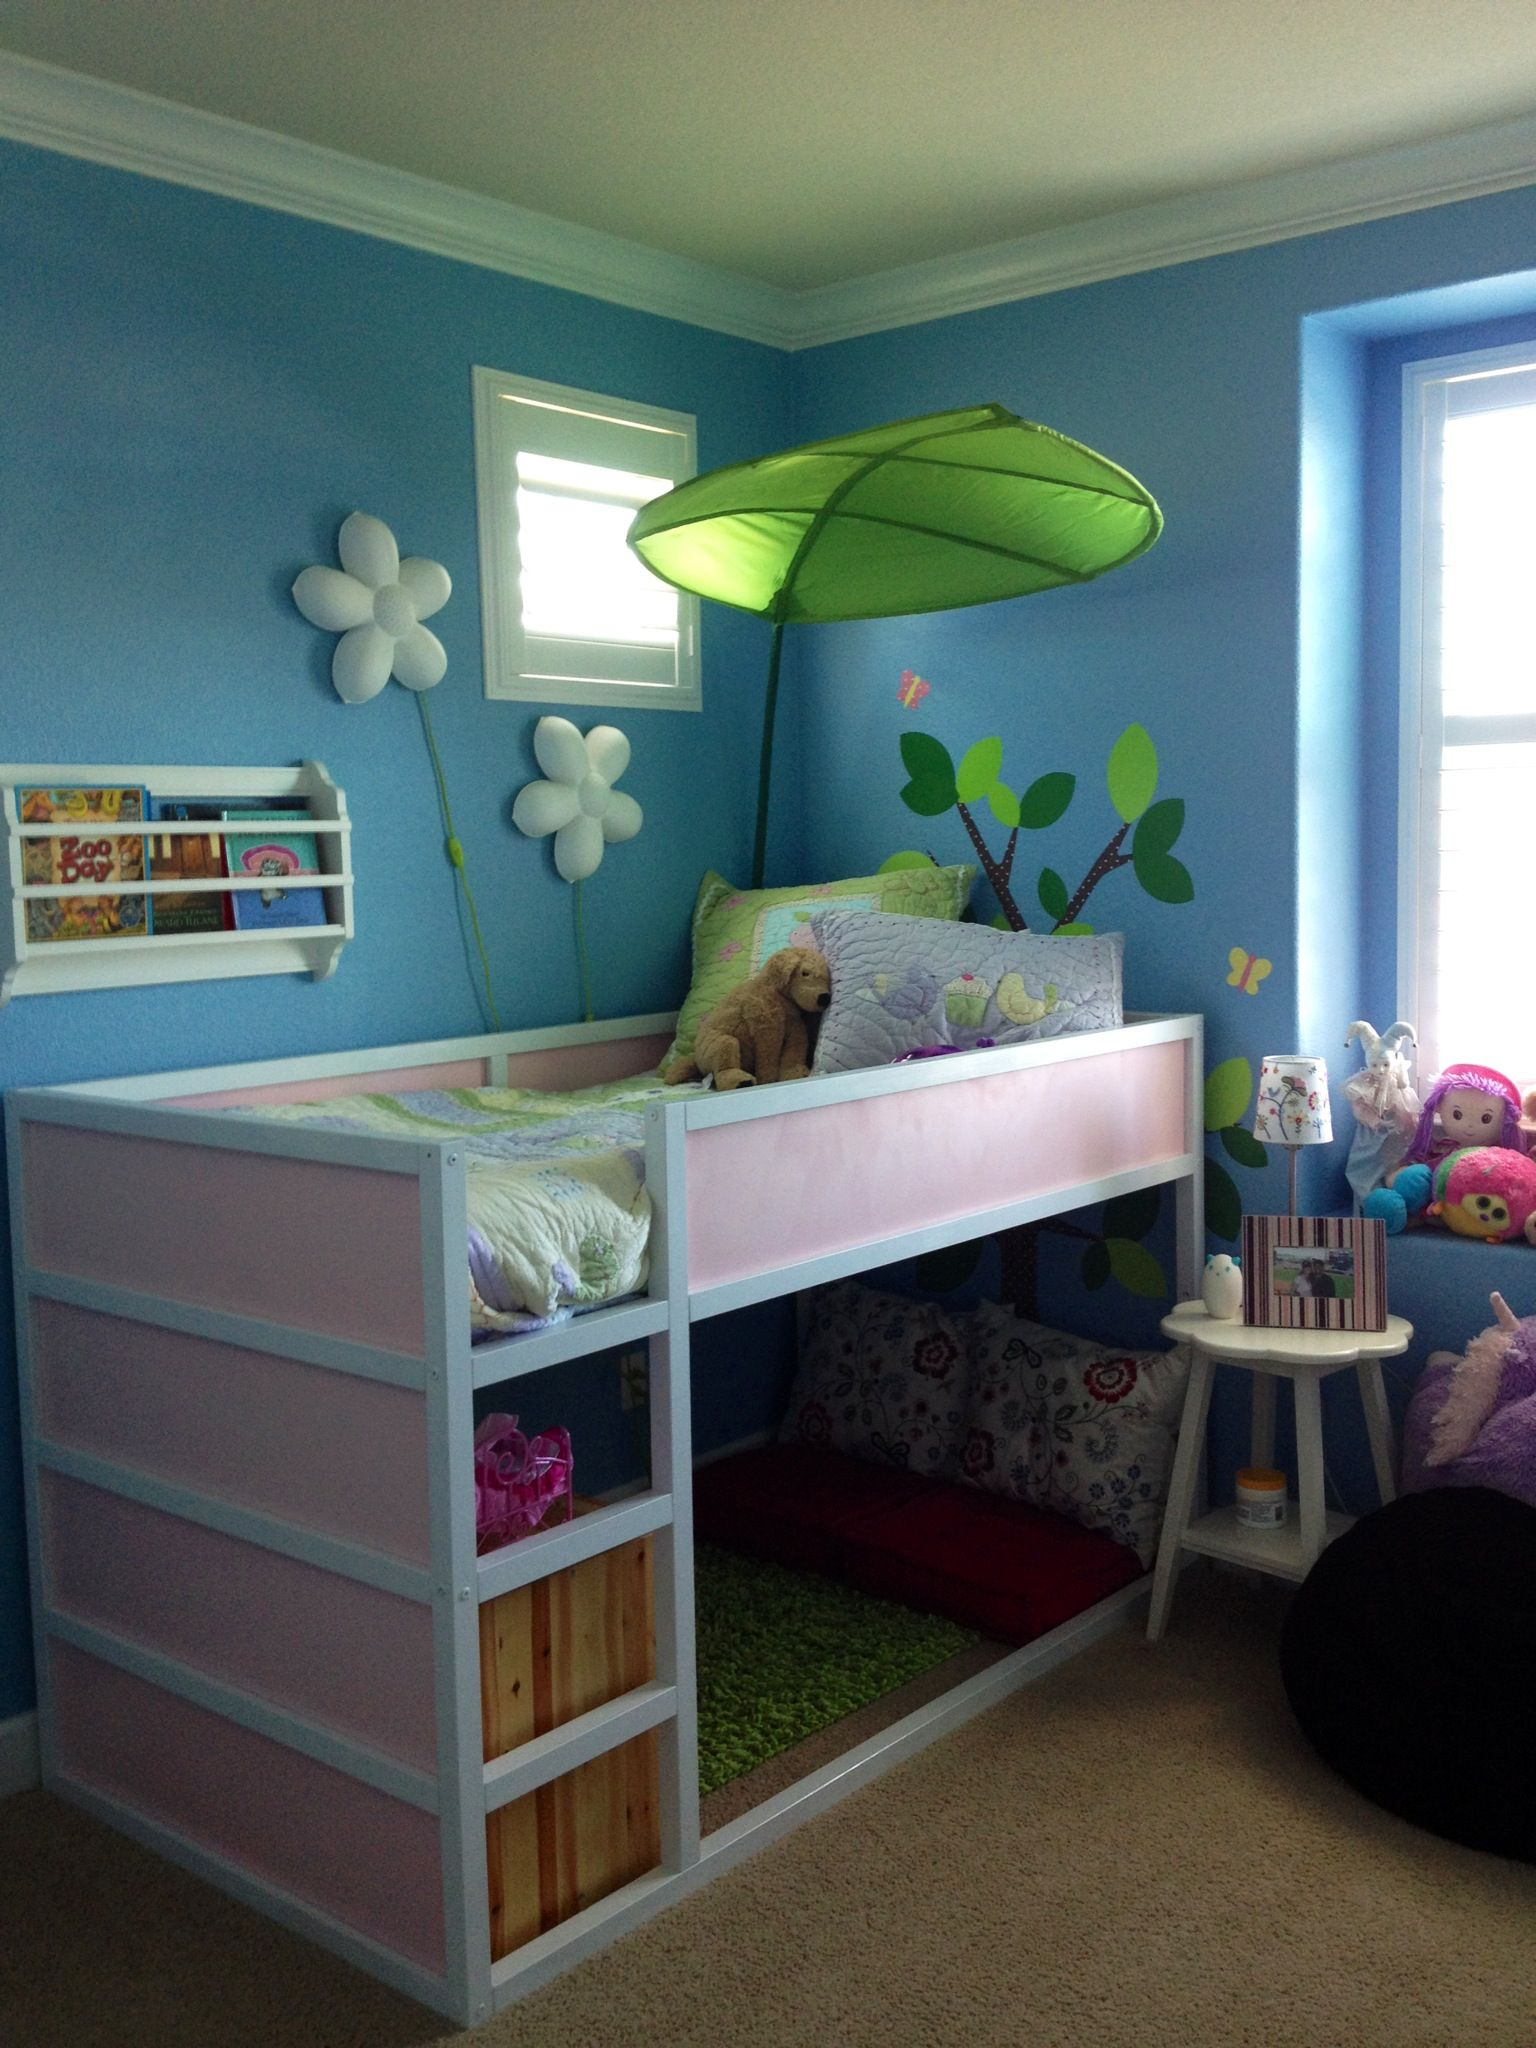 Kura bed from ikea with a reading nook below ikea kura bed hack pinterest kura bed - Ikea bunk bed room ideas ...